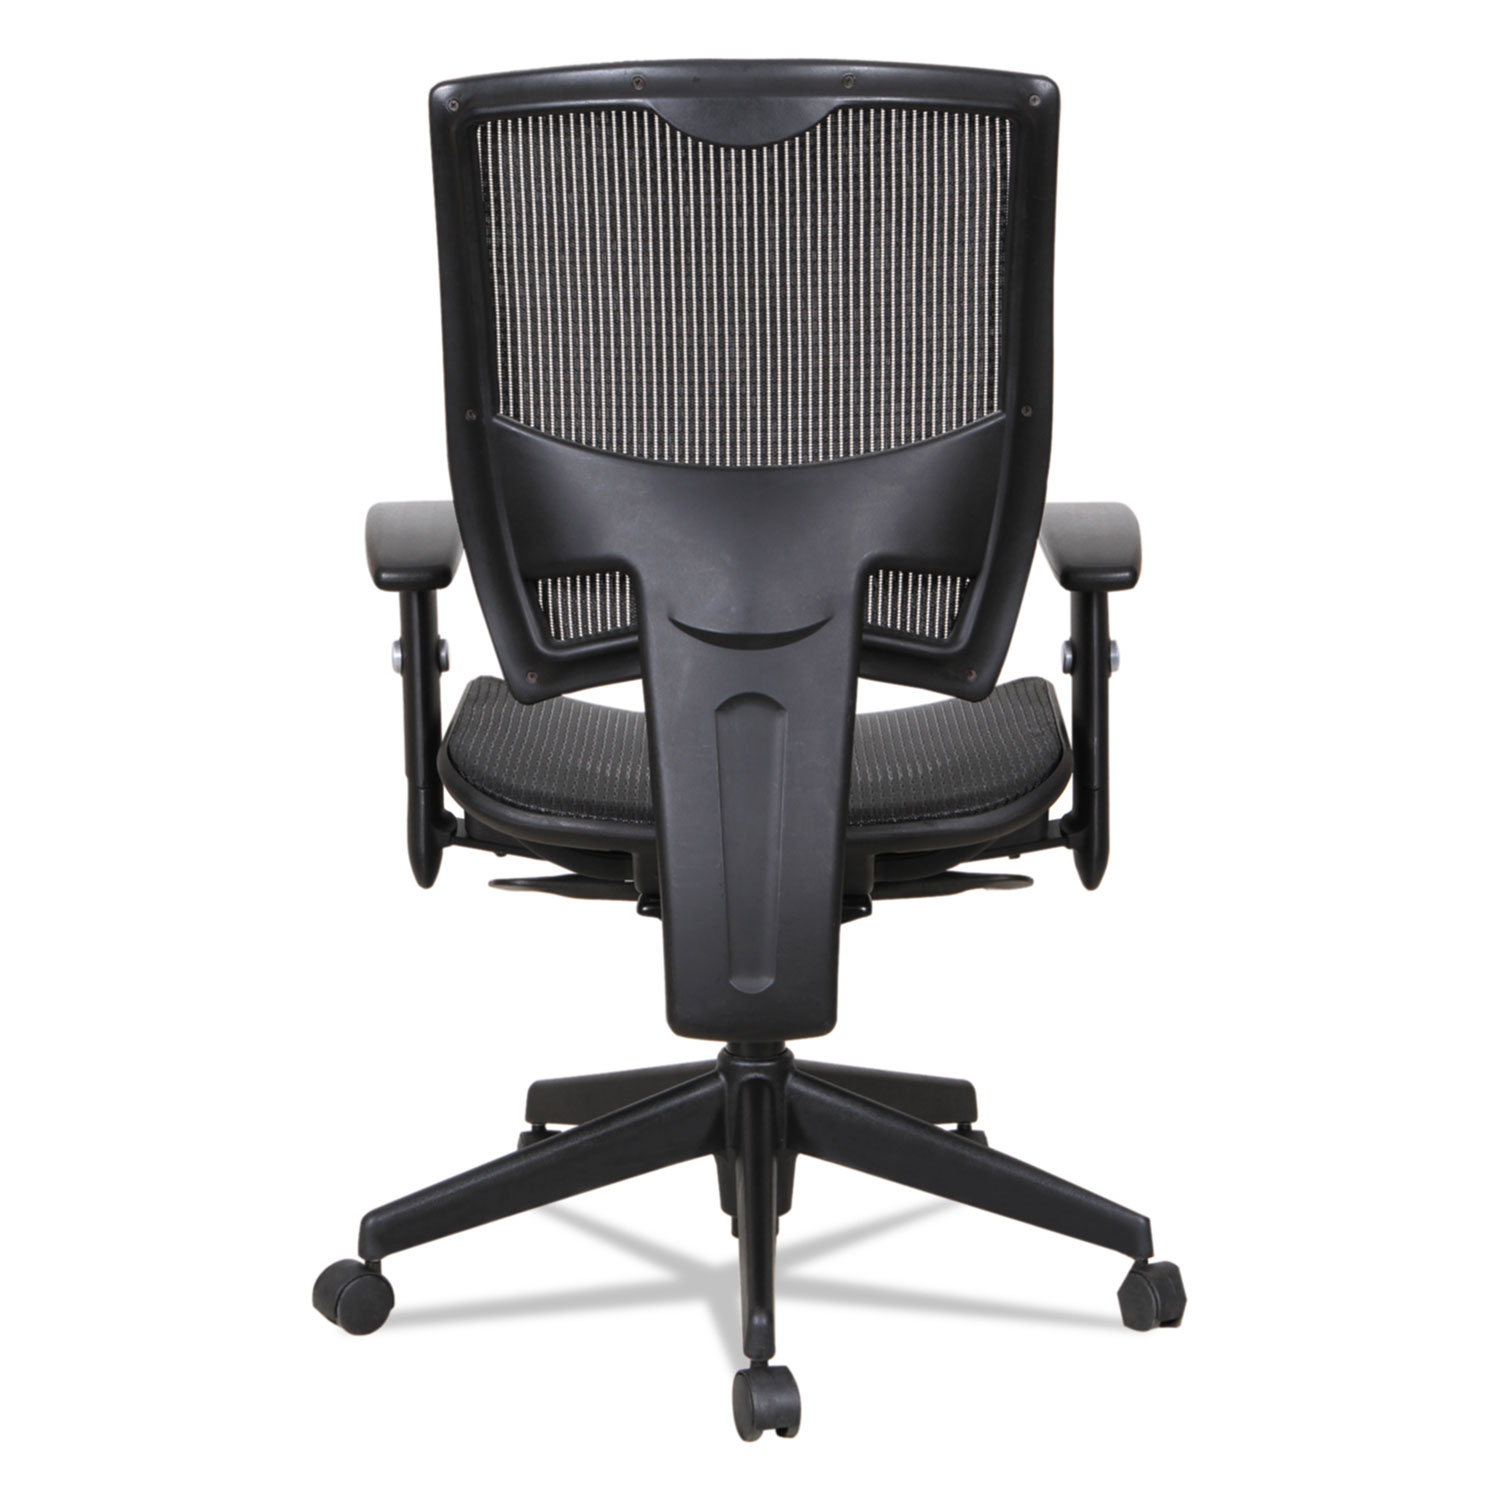 Alera Chair Alera Epoch Series All Mesh Multifunction Mid Back Chair